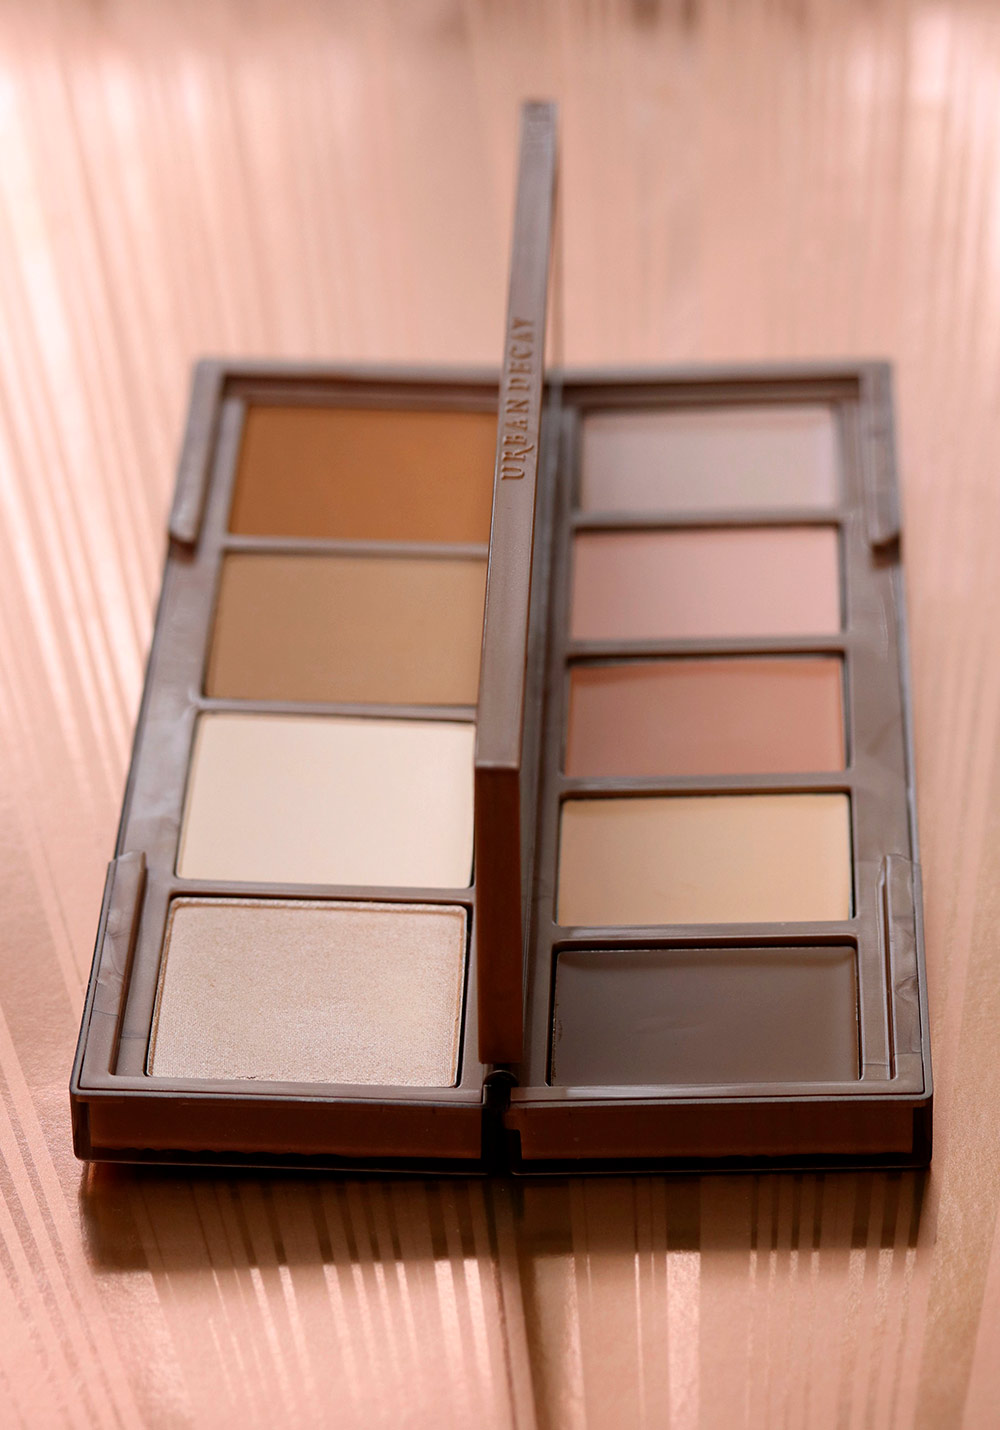 New Urban Decay Naked Skin Shapeshifter Travel Contouring